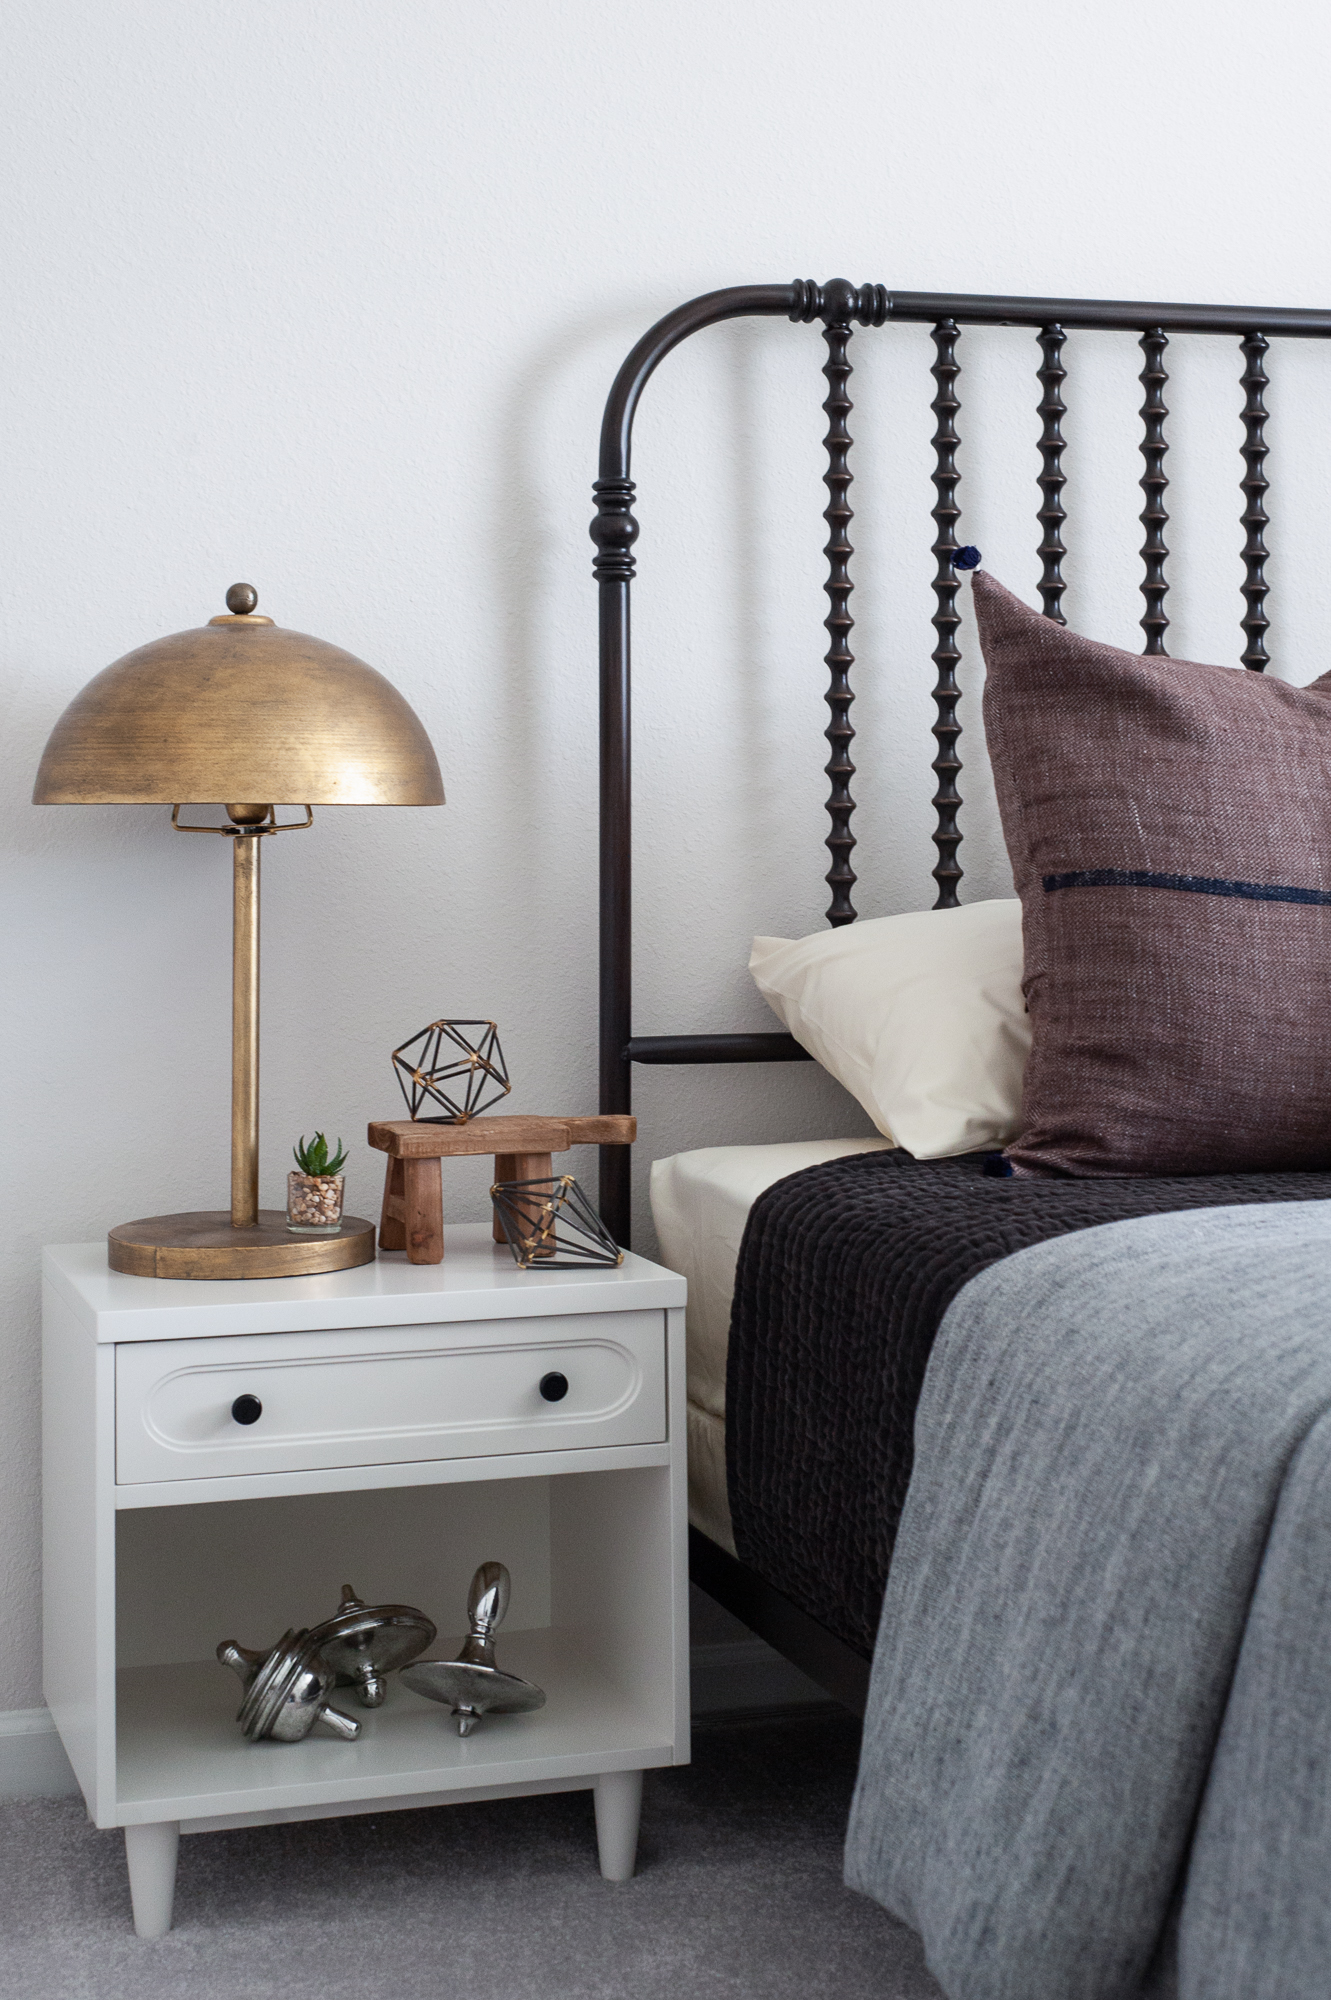 Micamy_Interior Designer_Design_Interior_Model_Merchandising_BoysBedroom_Boys_Camping_McGee&Co_PBTeen_AmityBedding_Universal_Furniture_Styling_SpindleBed_Rustic.jpg